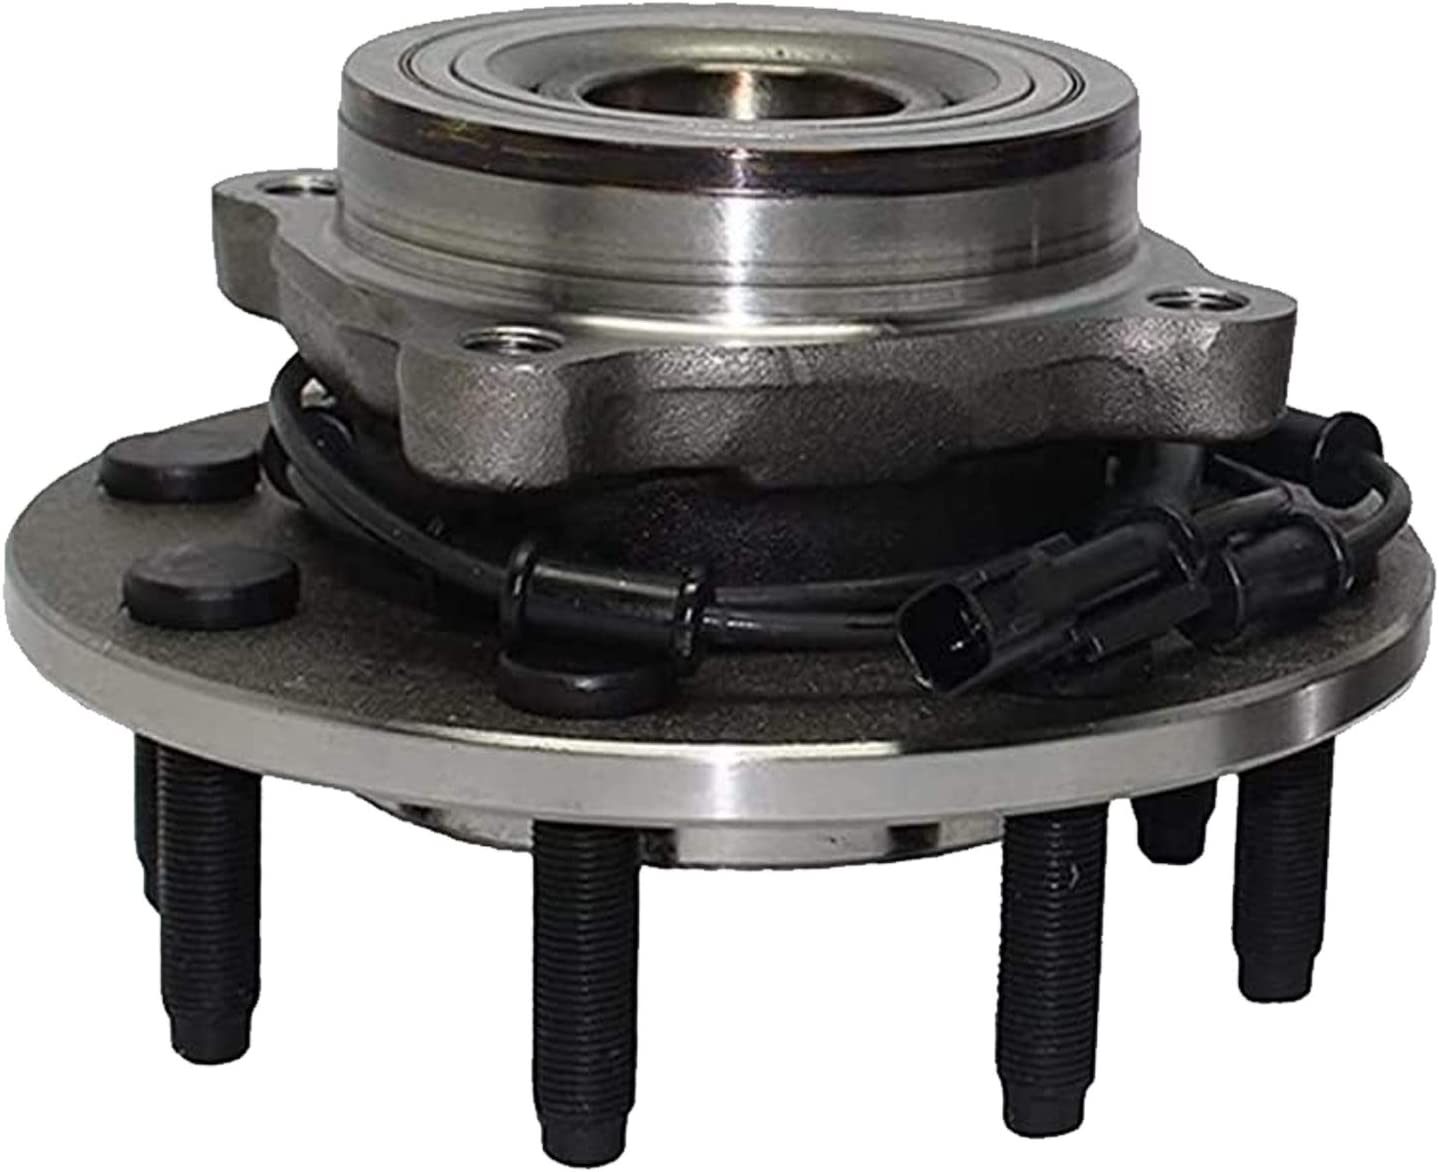 New Front  Wheel Bearing Hub Assembly For 06-08 Ram 1500 2500 3500 4x4 8 Stud